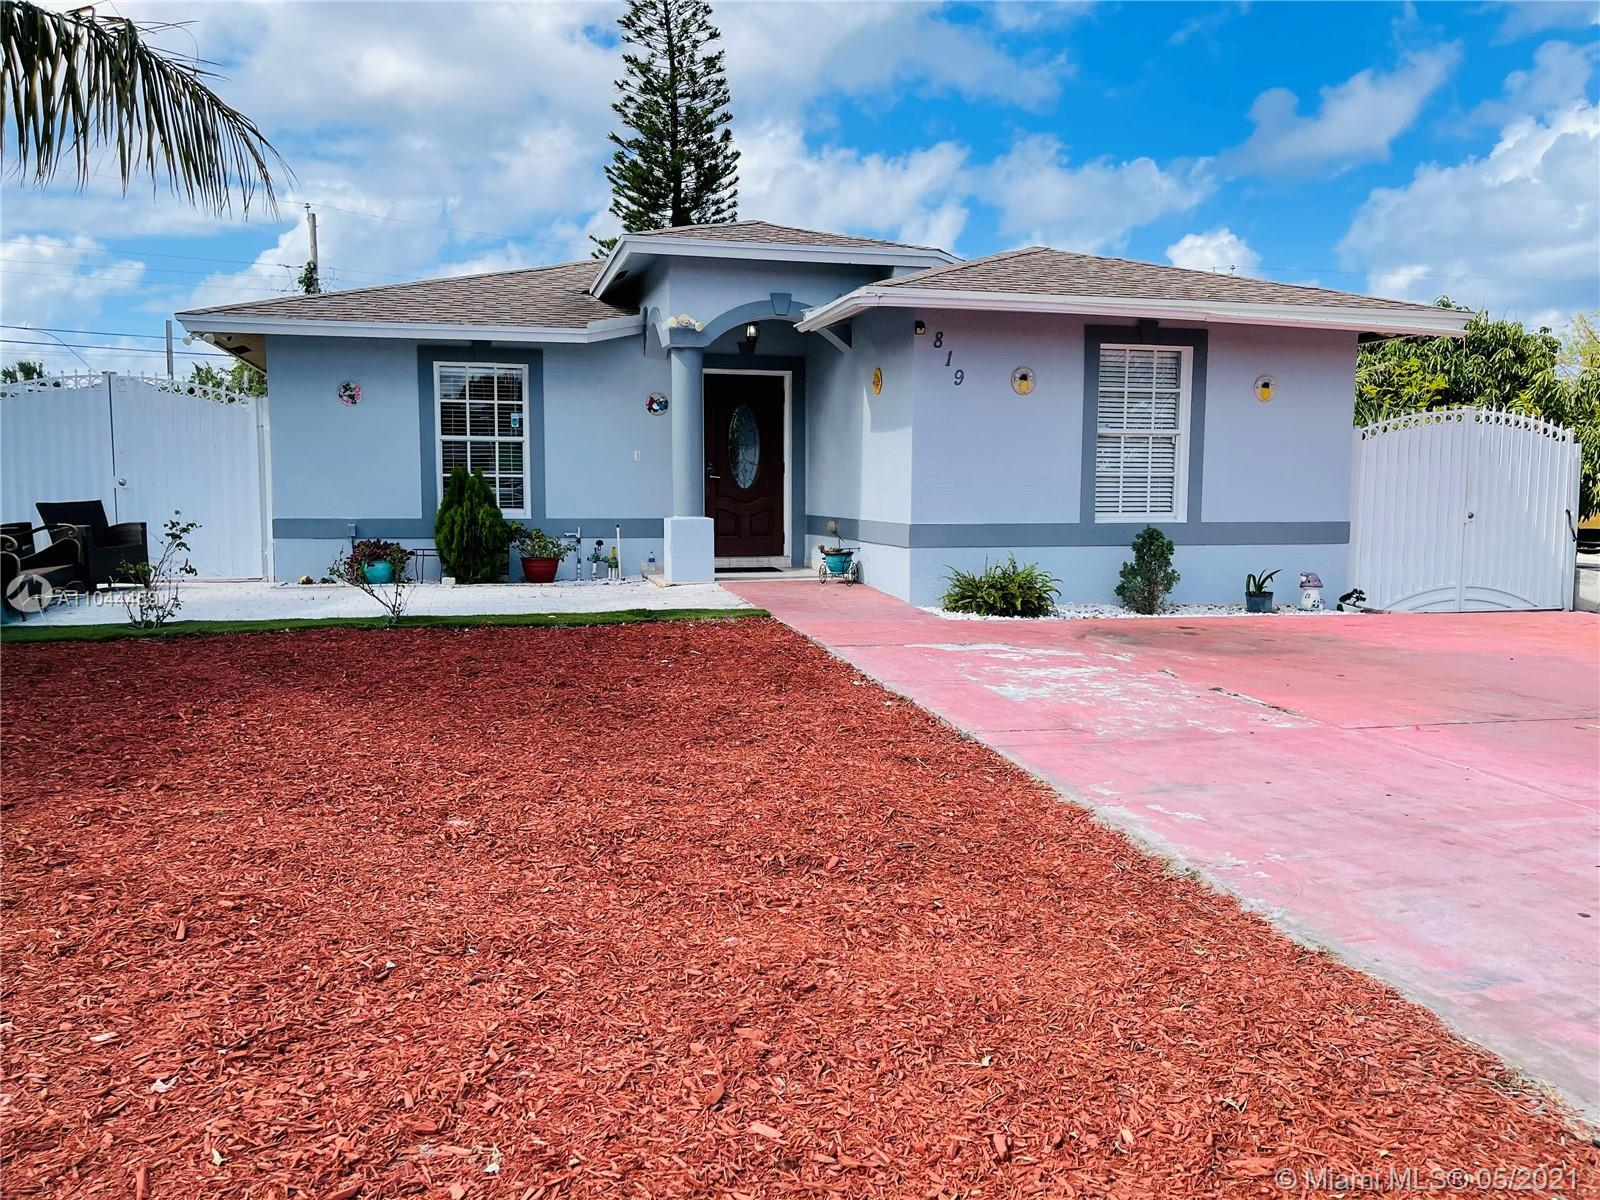 Amazing business opportunity, this house has two efficiency currently rented that will pay you mortg